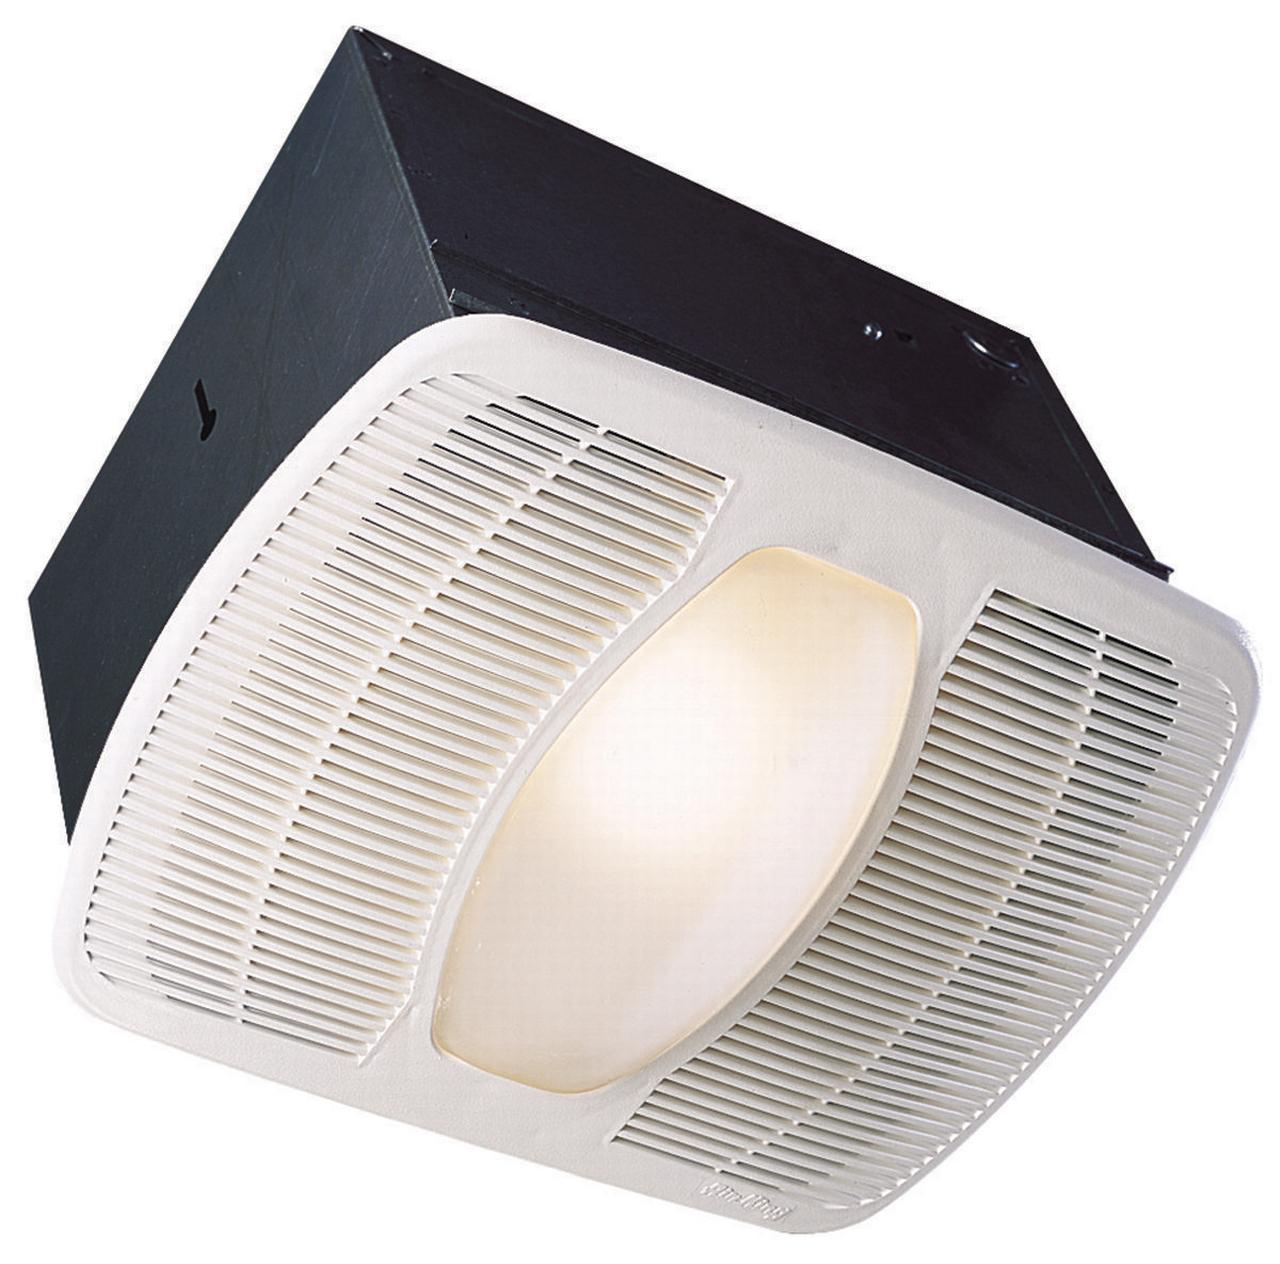 FAN EXHAUST 80CFM LED LT 1-SPD